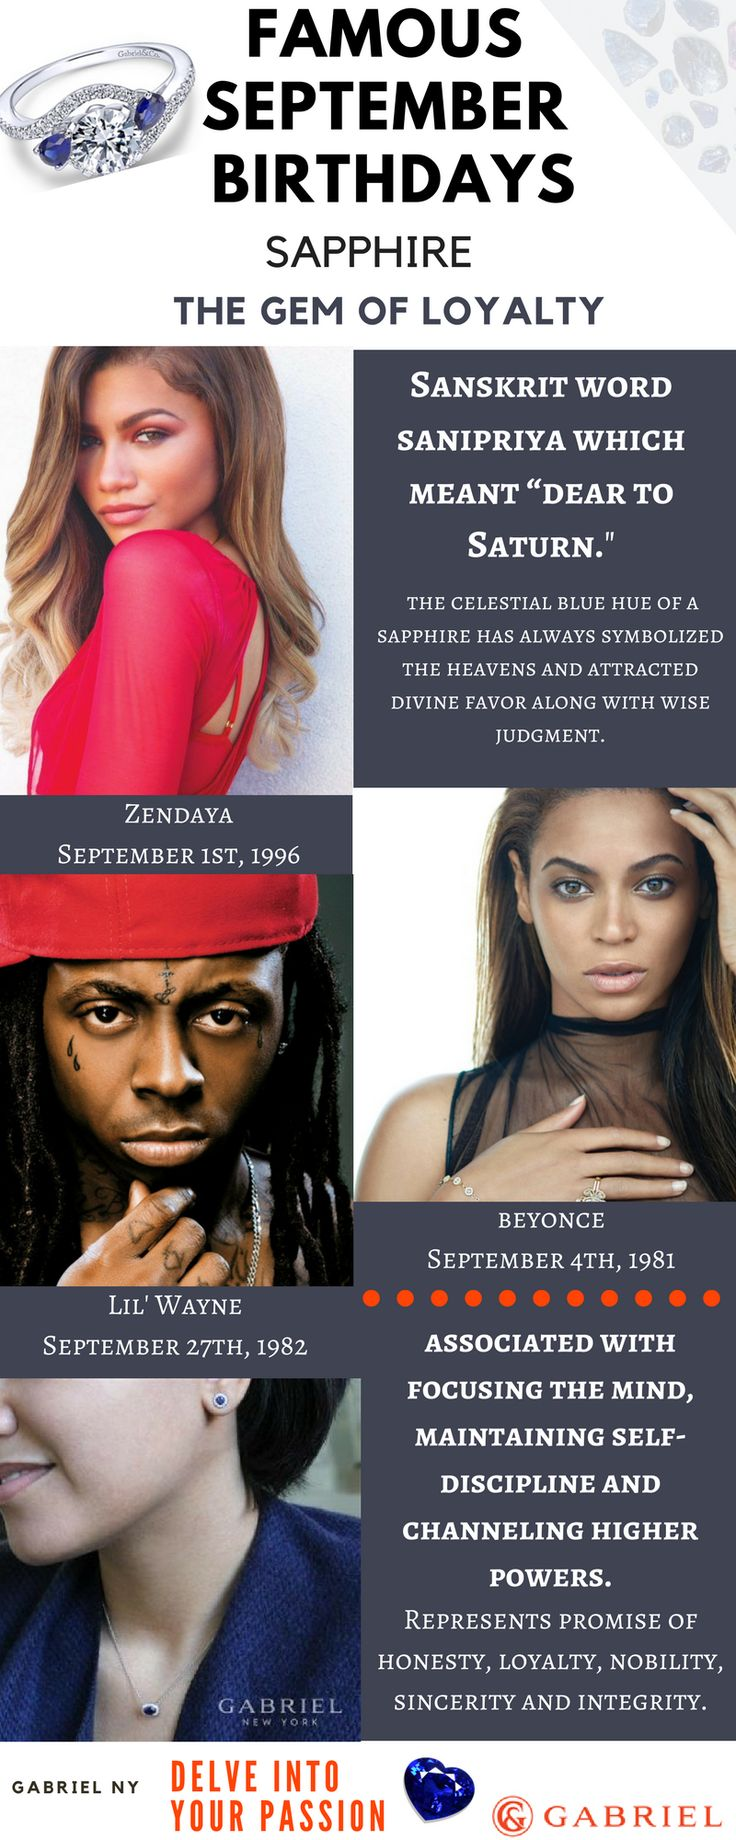 Famous September Birthdays! Including Zendaya, Lil Wayne, Beyonce and many many more! Find out more about the gem of loyalty.